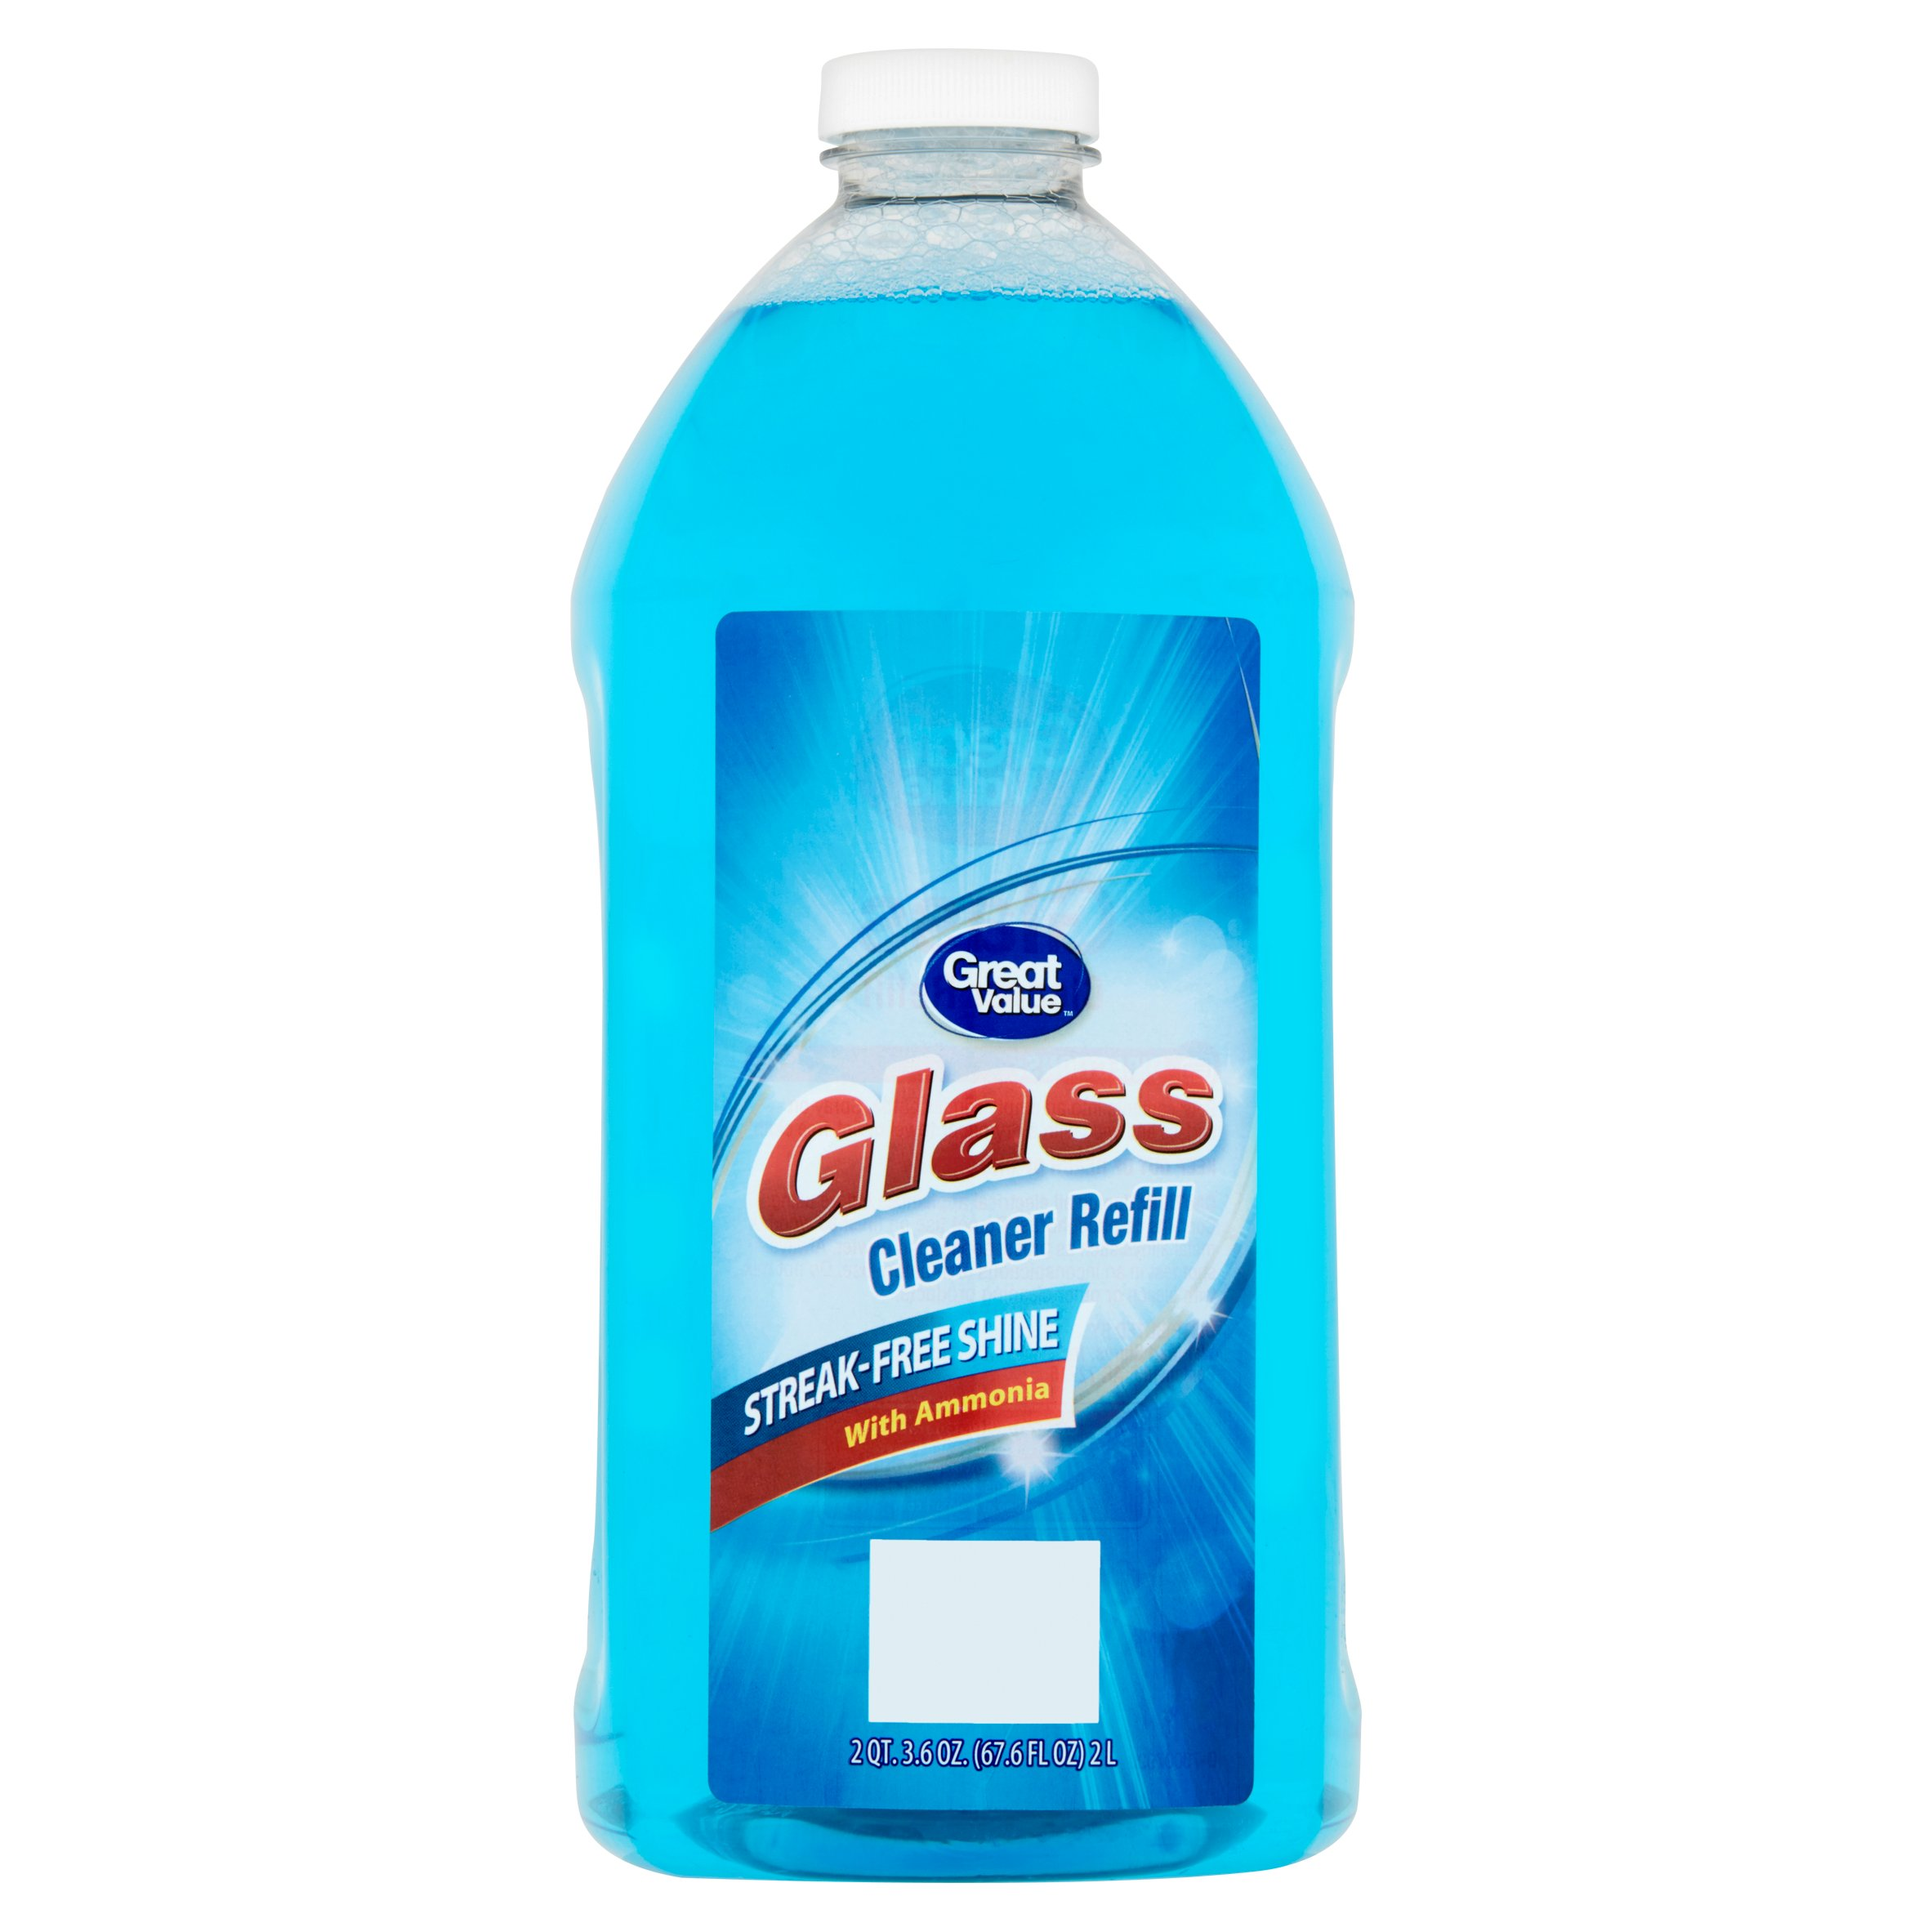 Great Value Glass Cleaner Refill, Streak-Free Shine, 67.6 fl oz